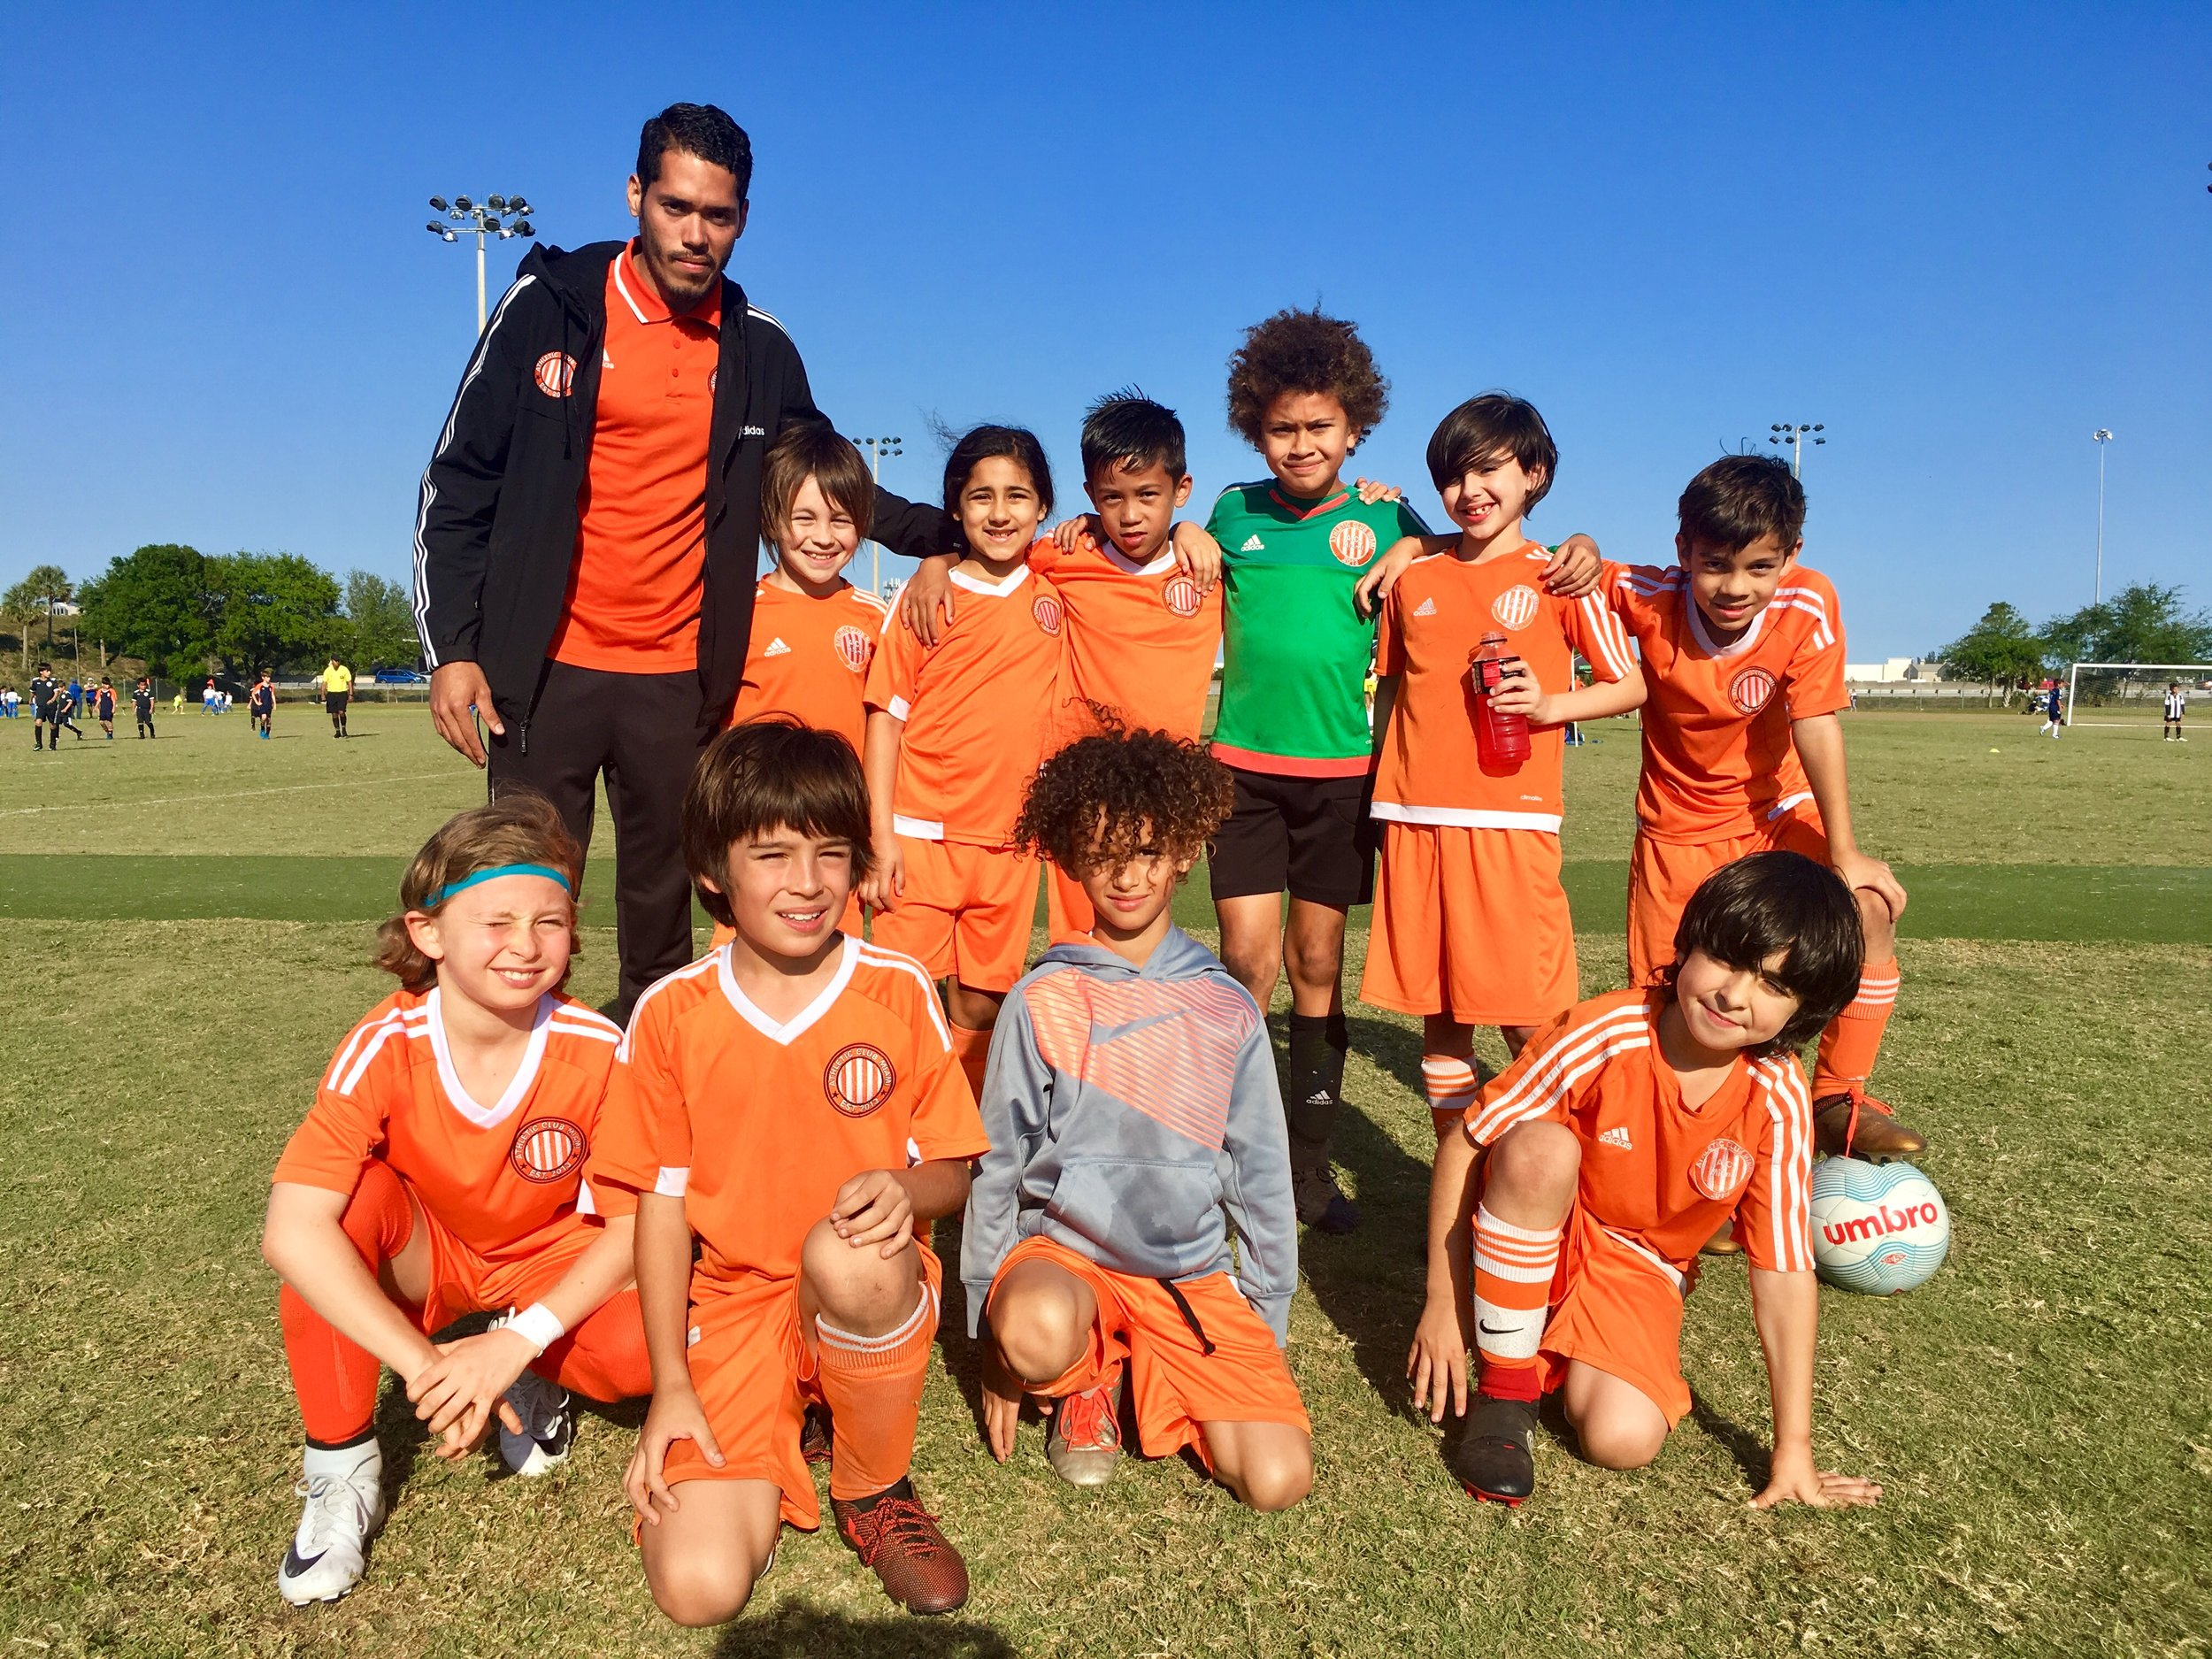 U9 2009 South Florida Cup 2018 copy.jpg